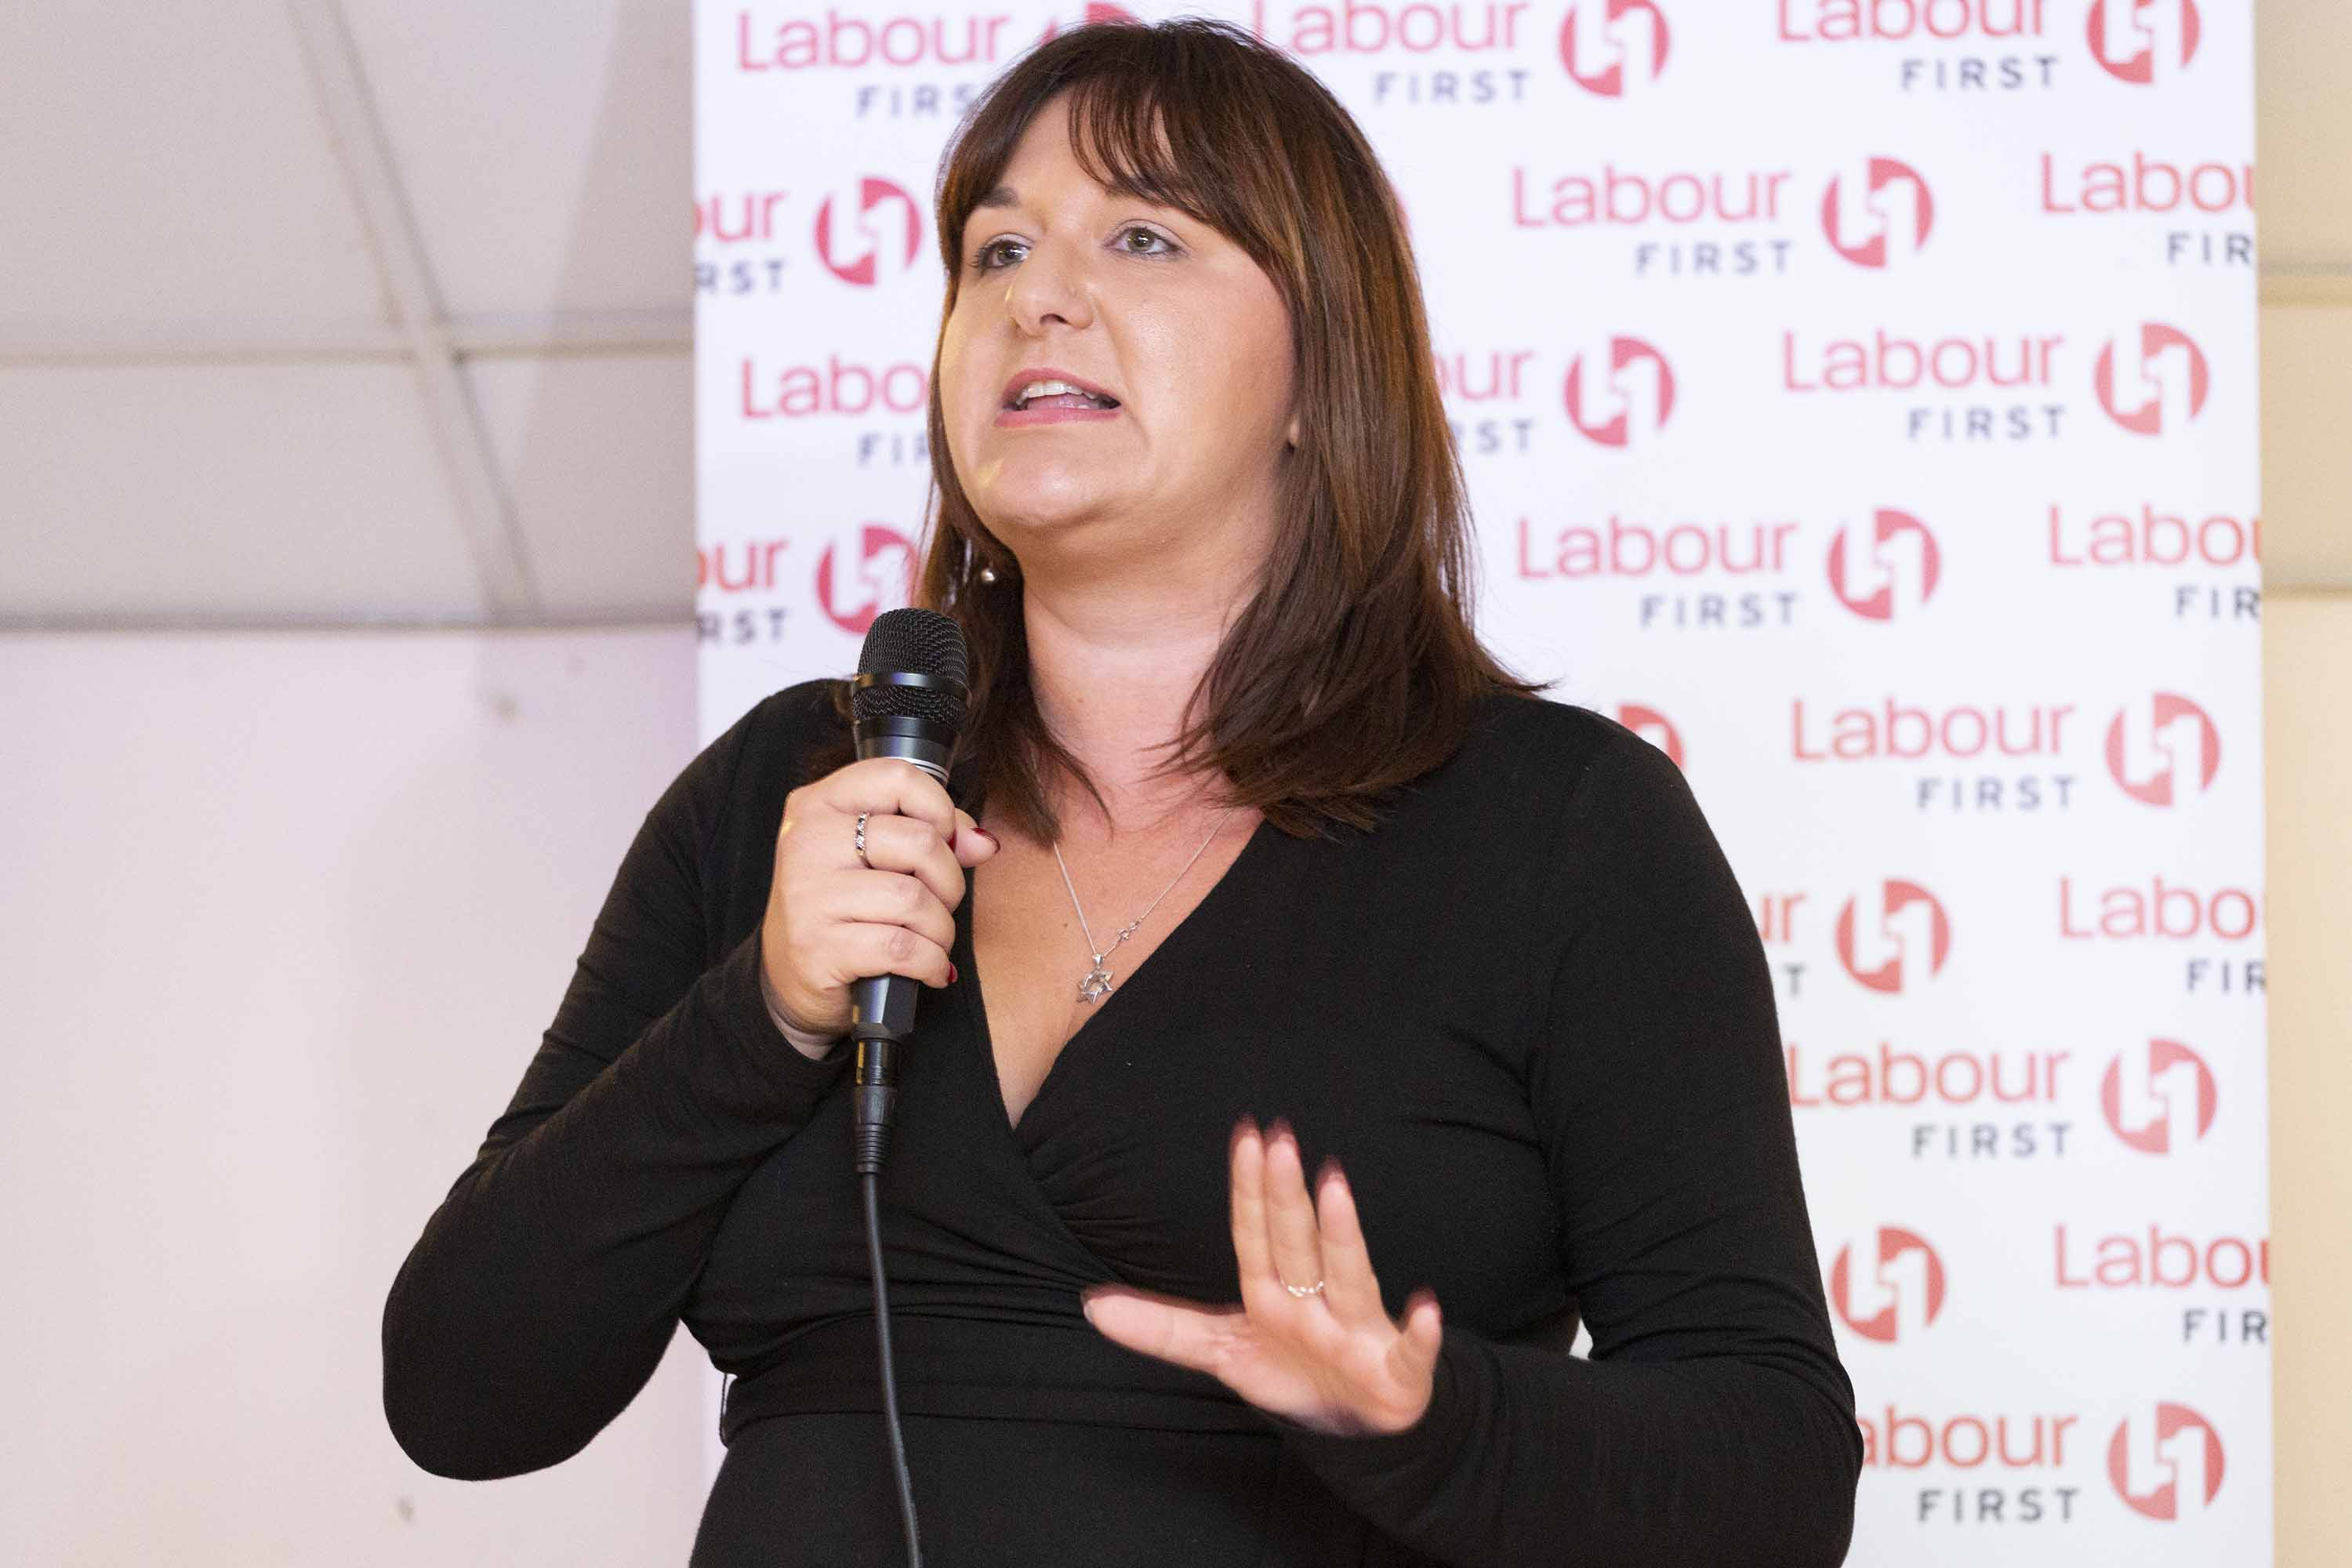 Ruth Smeeth speaks at an event on the fringe of the 2019 Labour Party conference in Brighton, England on September 22. Photo: Nicola Tree/Getty Images